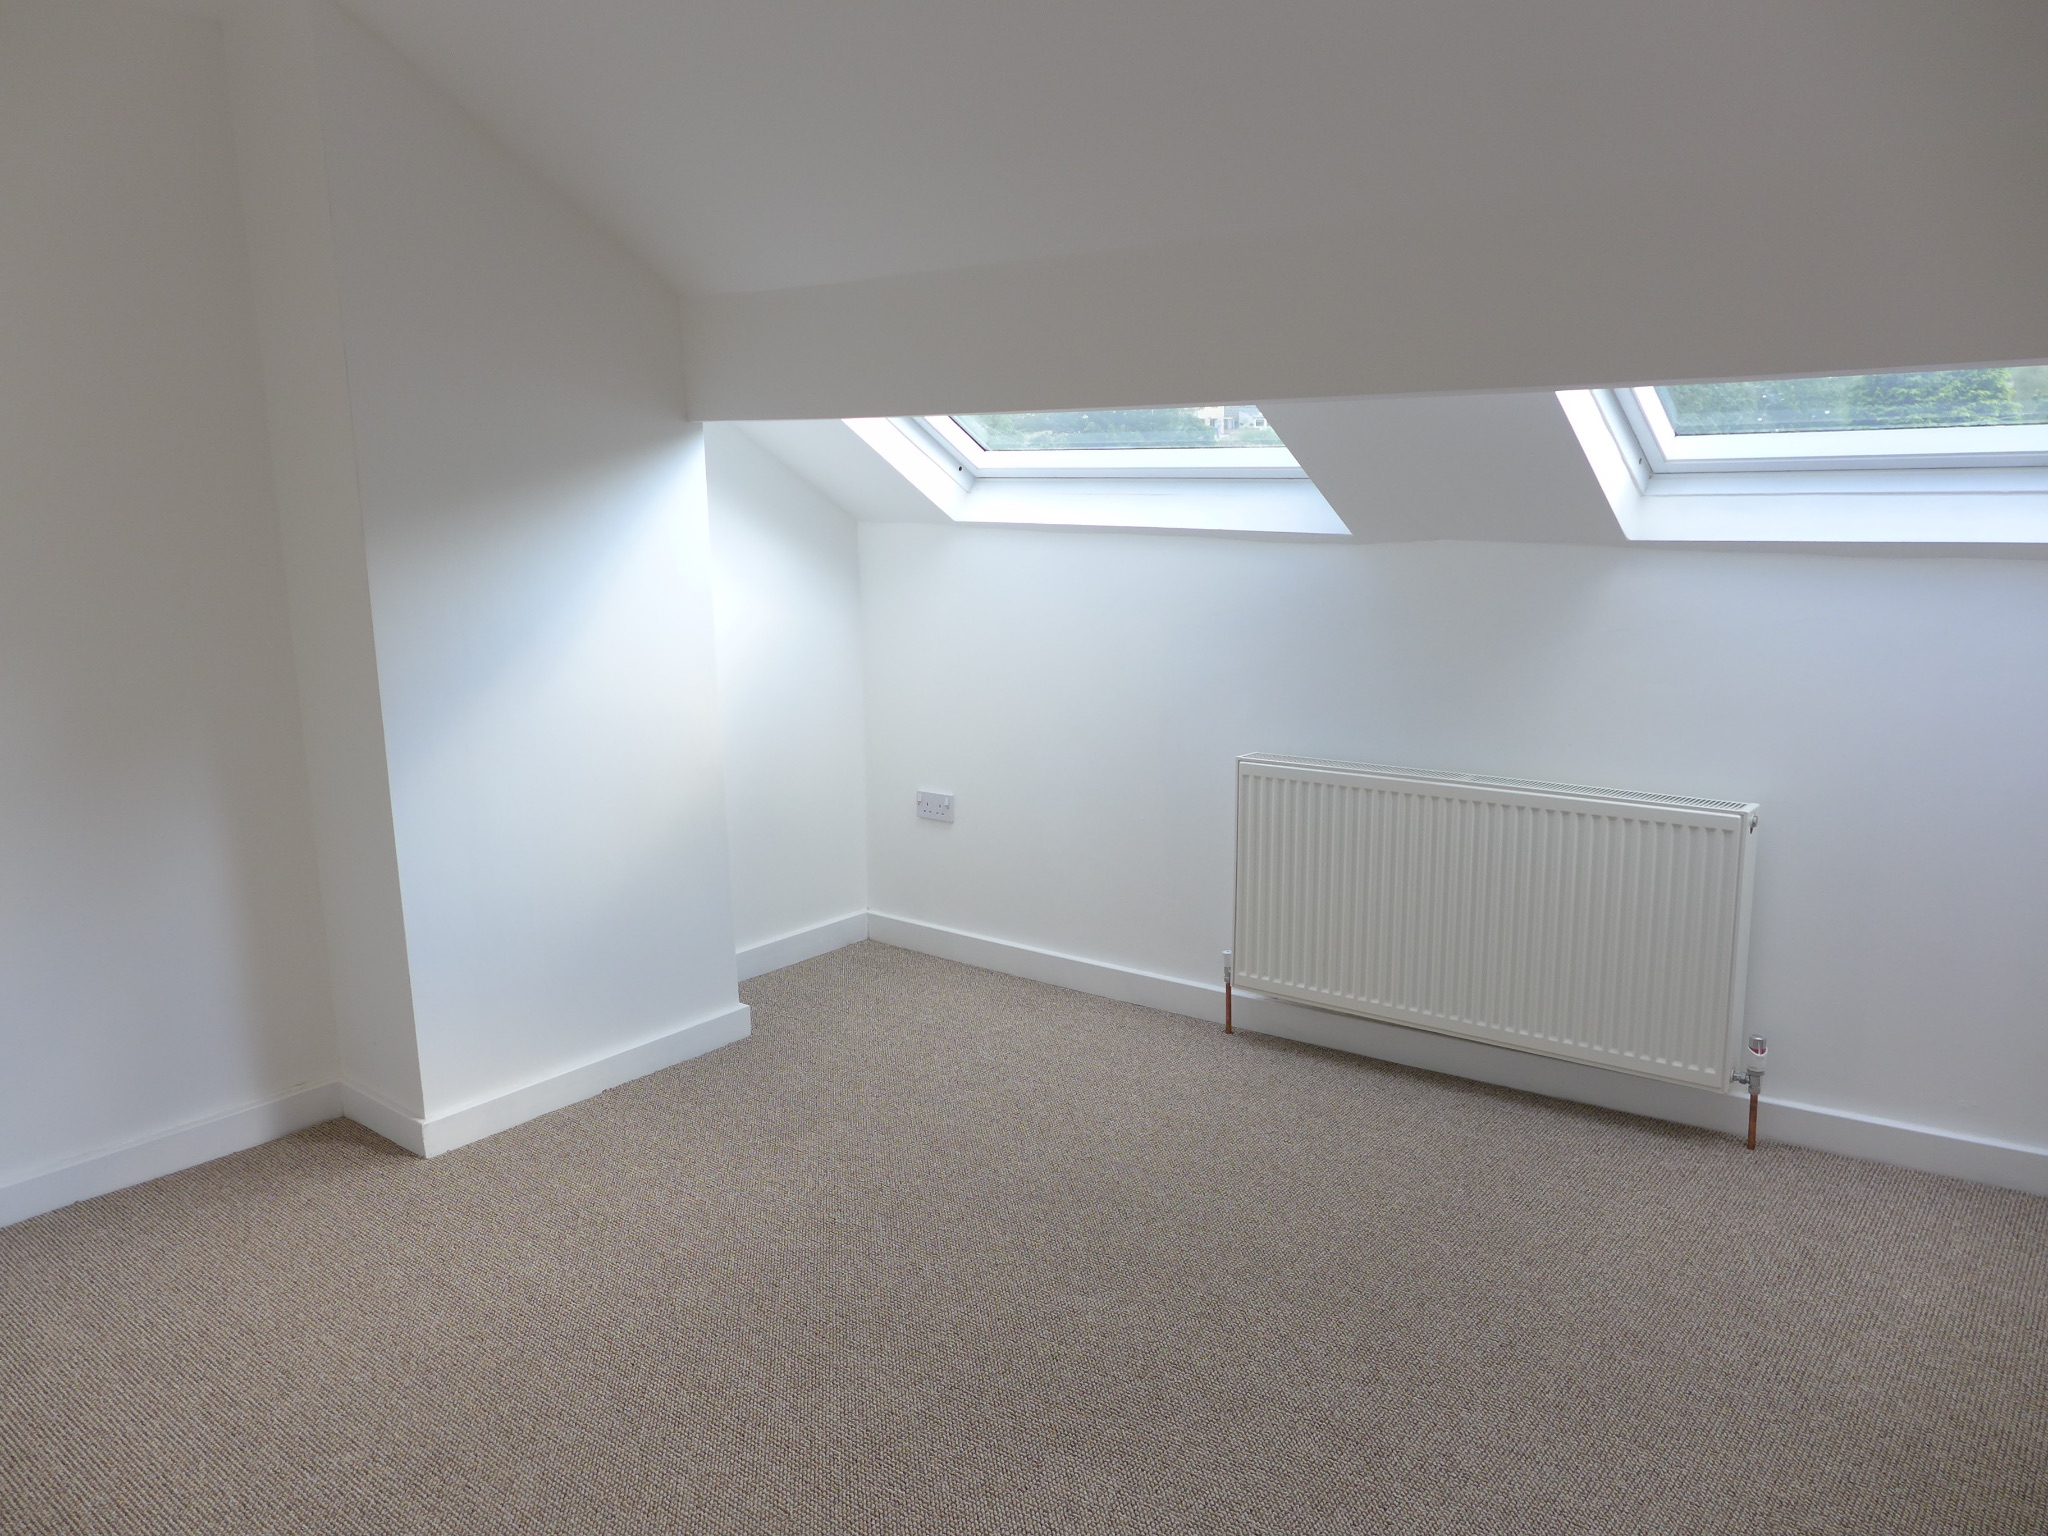 3 bedroom mid terraced house For Sale in Todmorden - Photograph 15.